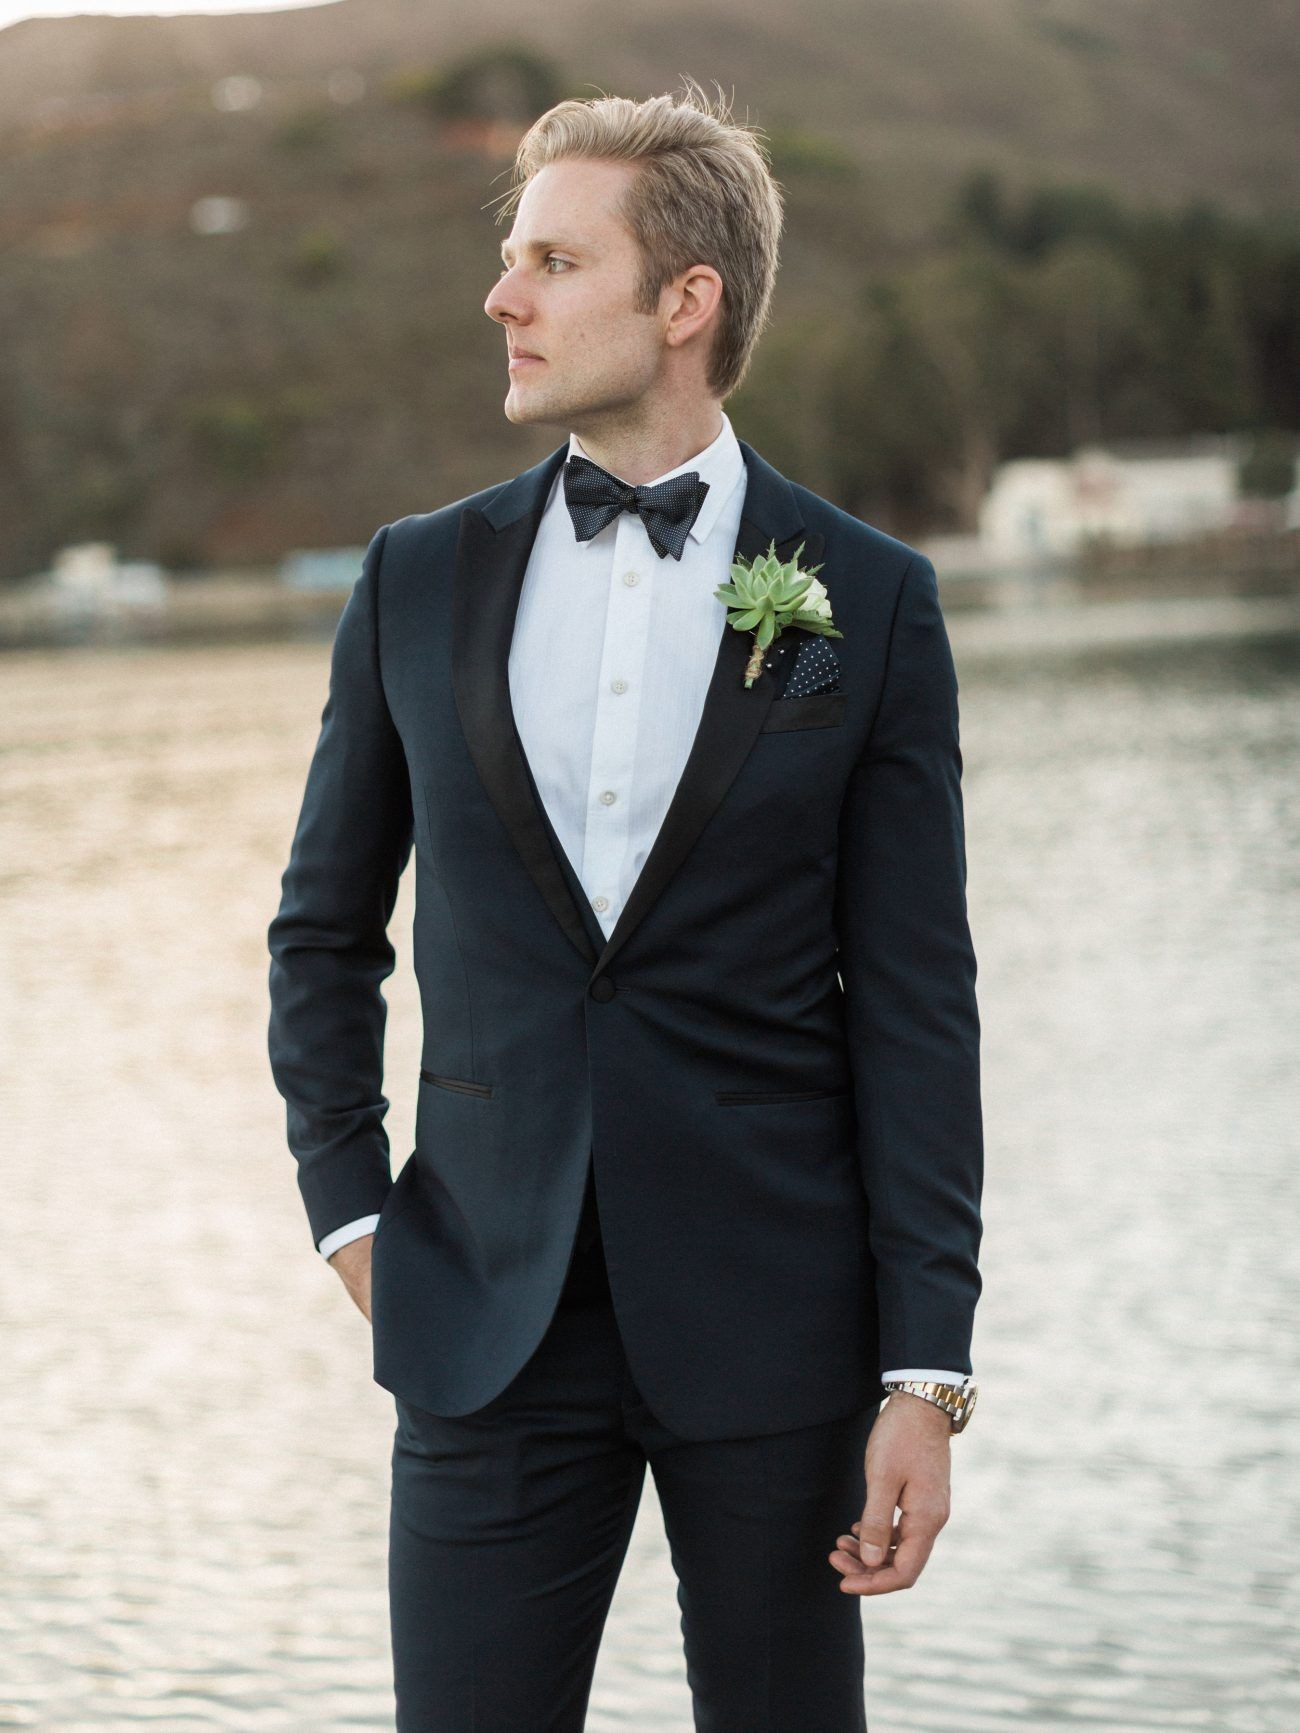 Groom wearing a suit and posing in front of a lake